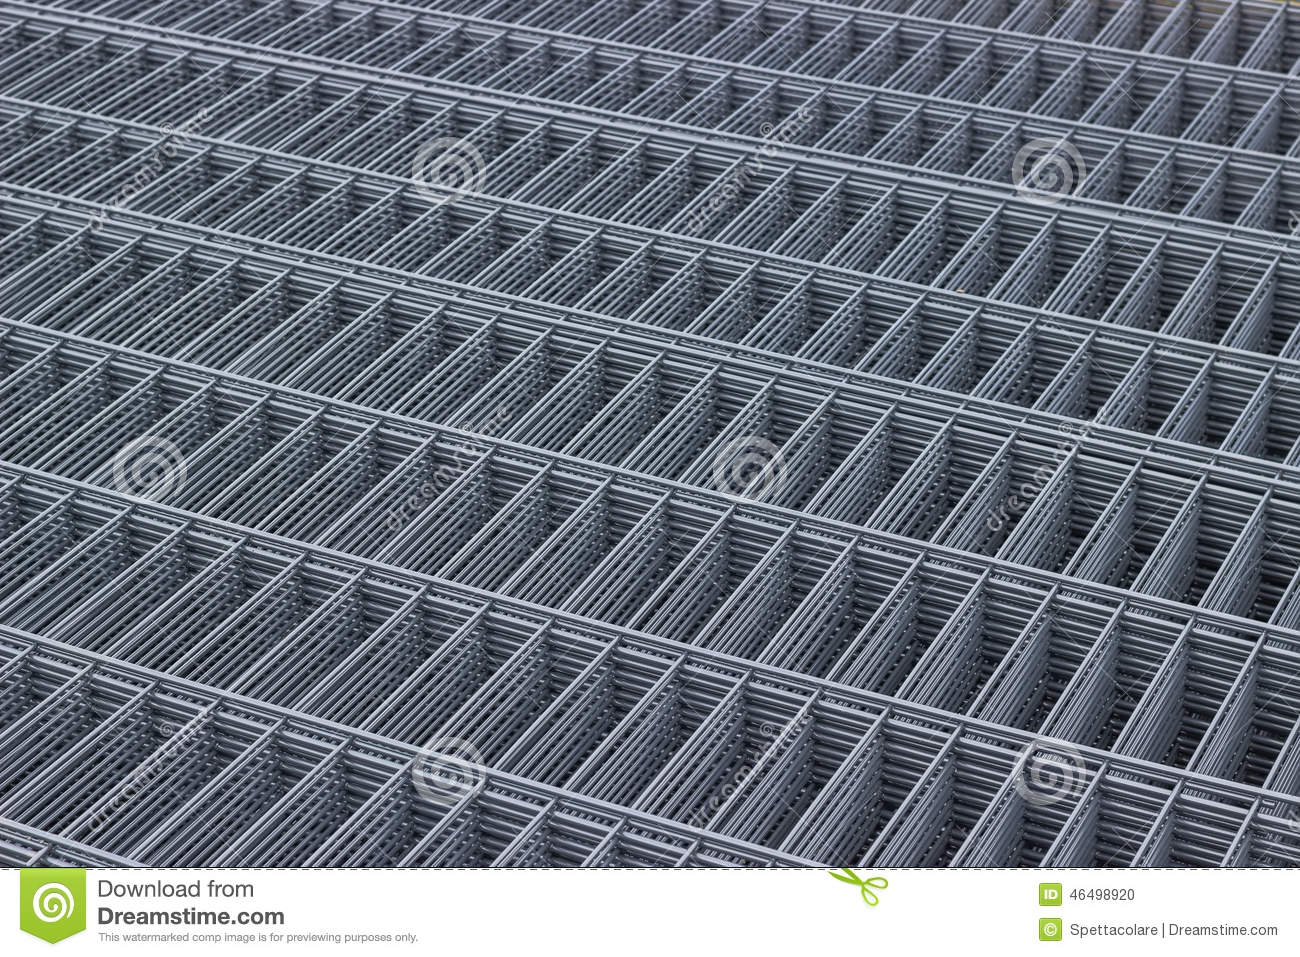 Wire mesh panels 3 stock photo. Image of building, dump - 46498920